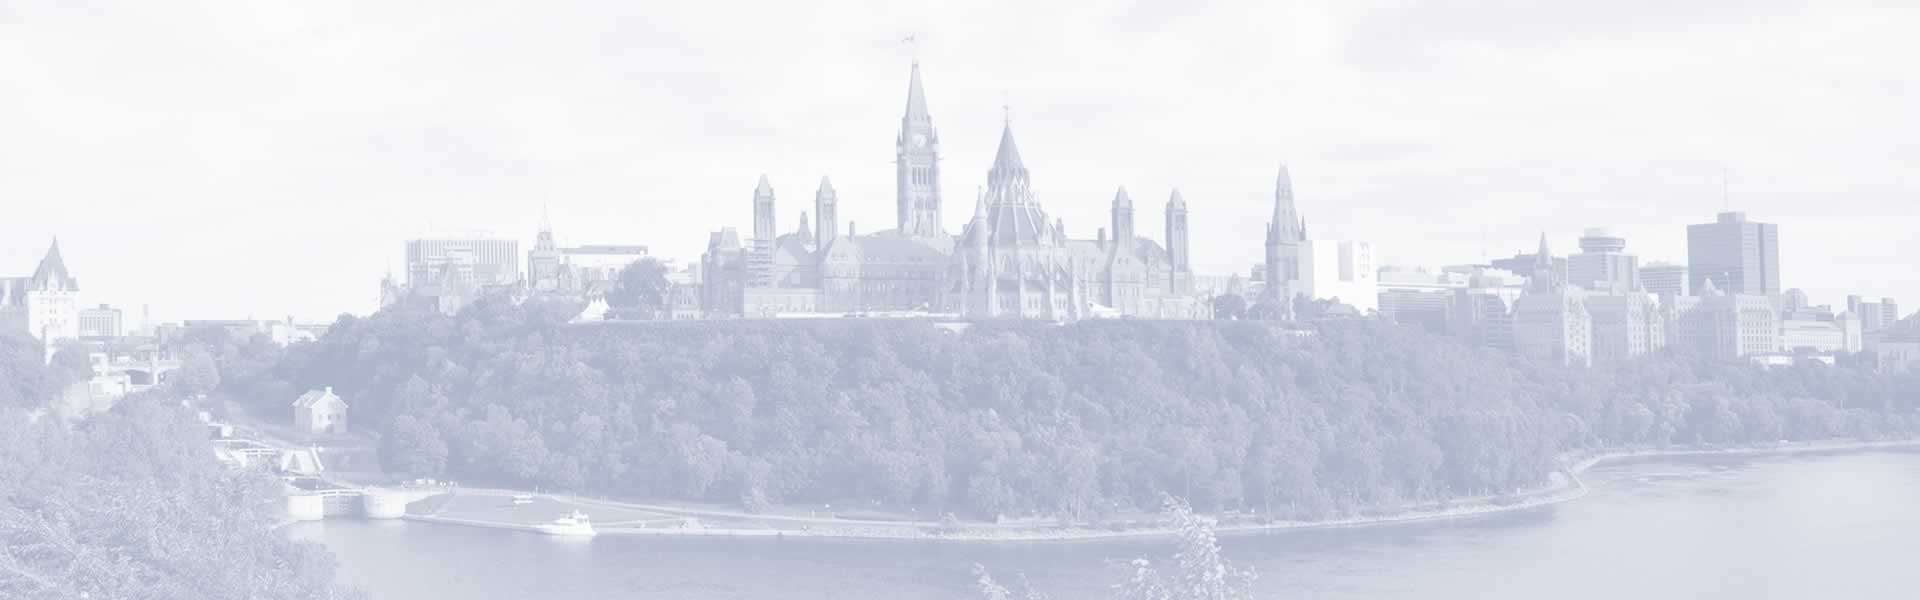 Parliament of Canada sitting majestically on the Ottawa River